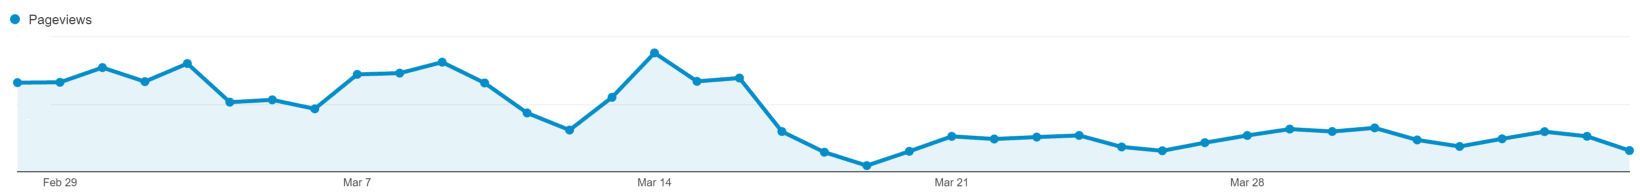 Total Page Views in Google Analytics